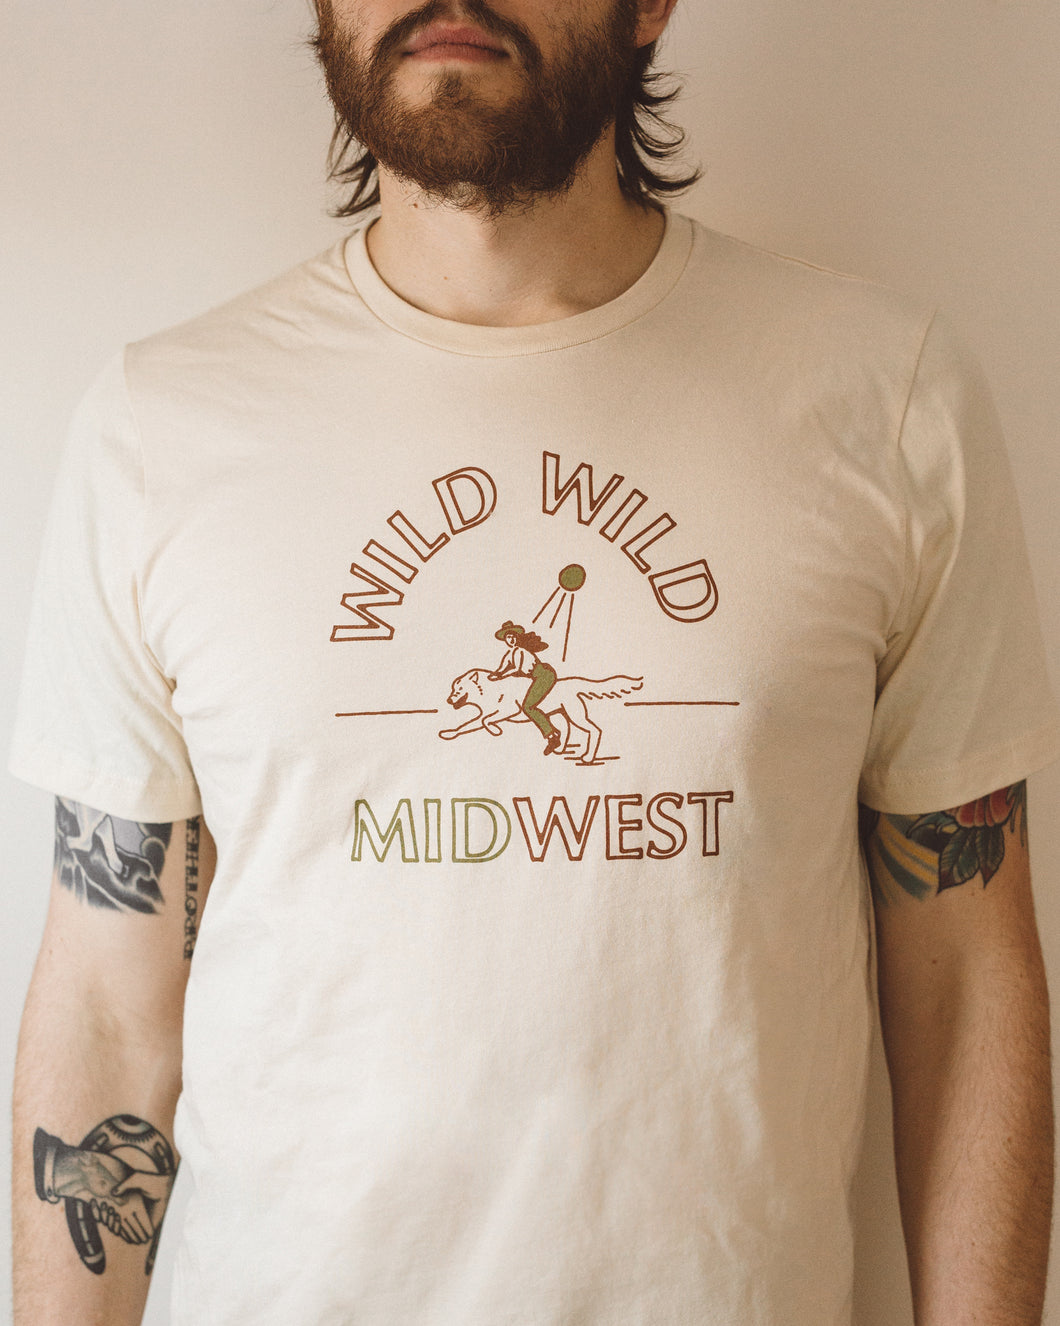 wild wild midwest unisex tee in red & gold